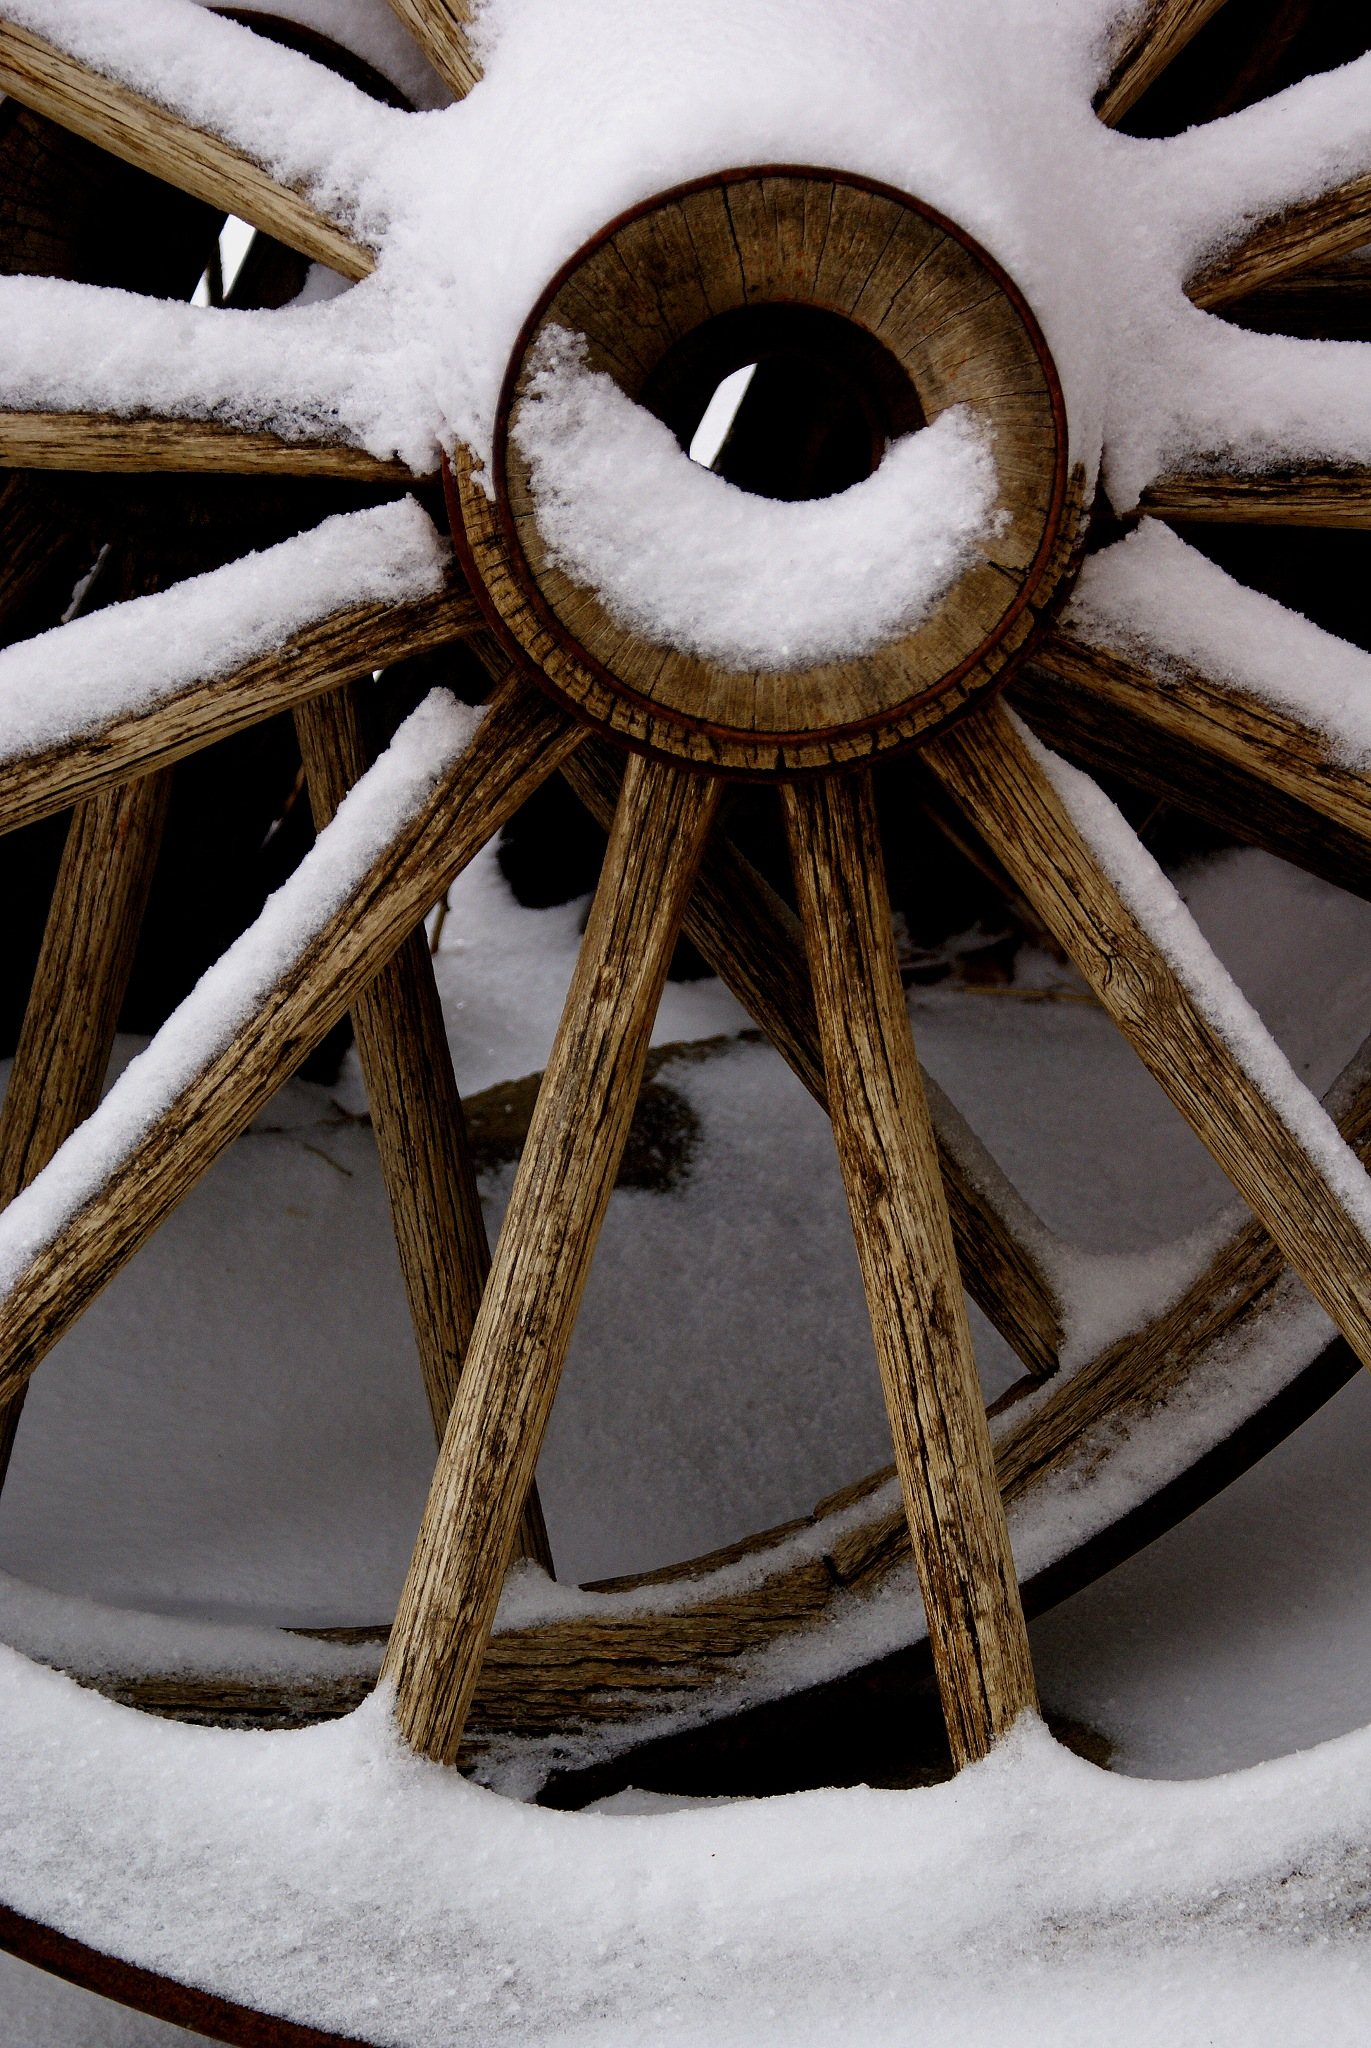 Wagon Wheels, With Snow by Stefani Madison